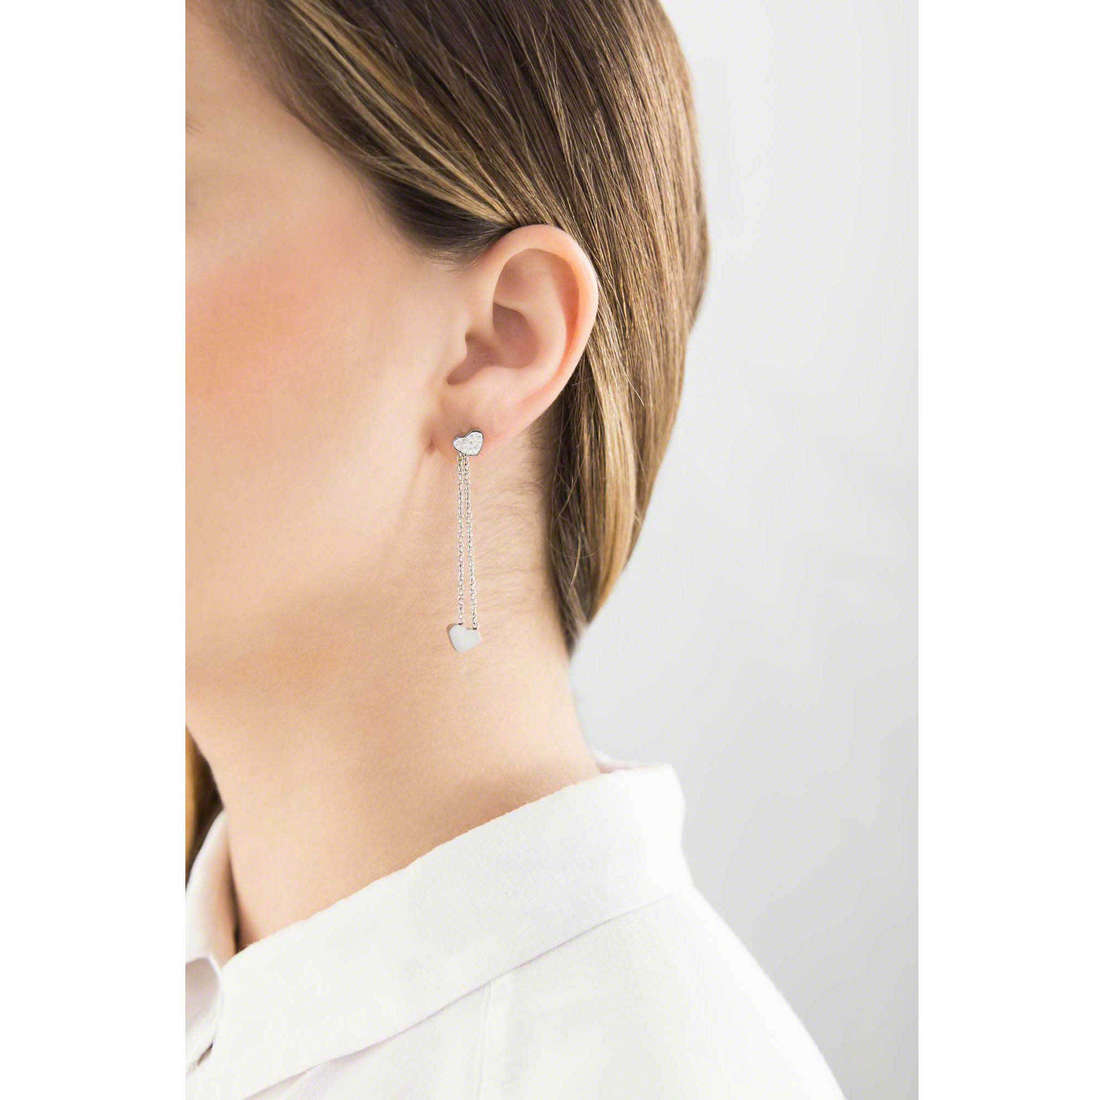 Marlù boucles d'oreille My Luck femme 18OR023 indosso